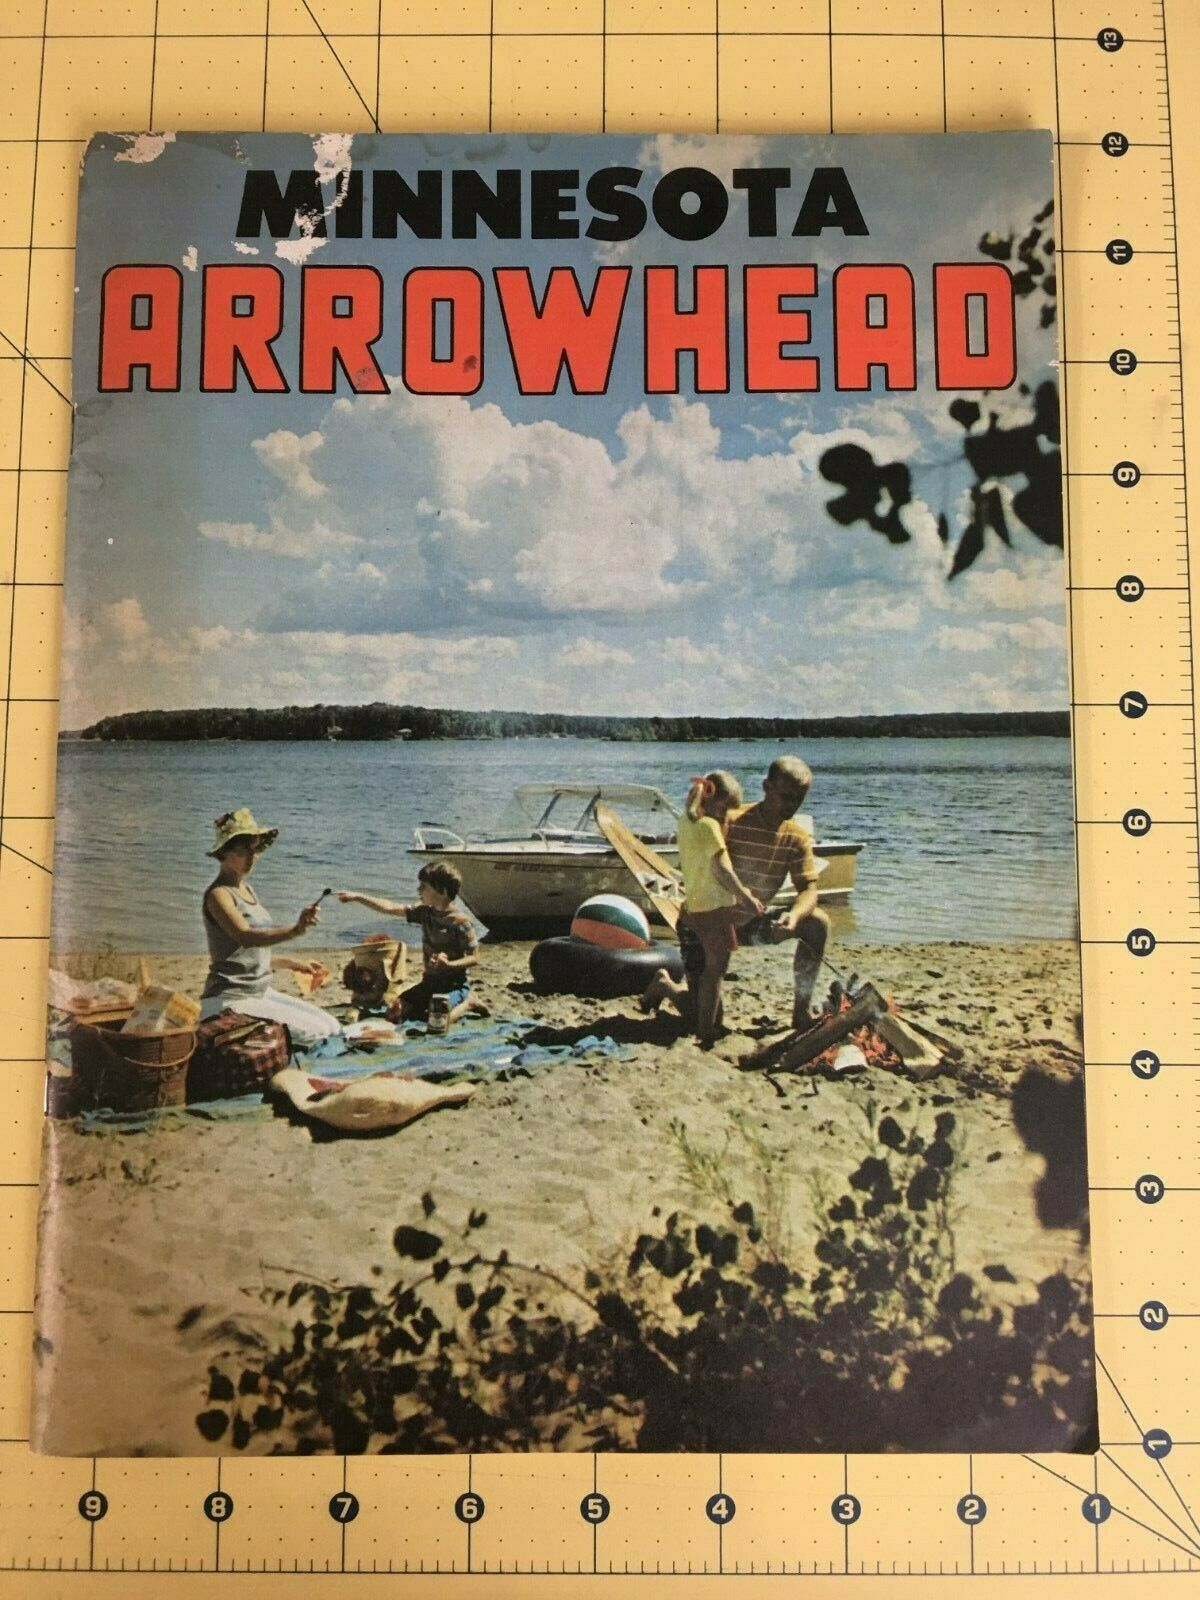 Vintage Minnesota Arrowhead Travel Vacation Magazine Advertisement 50' 60's